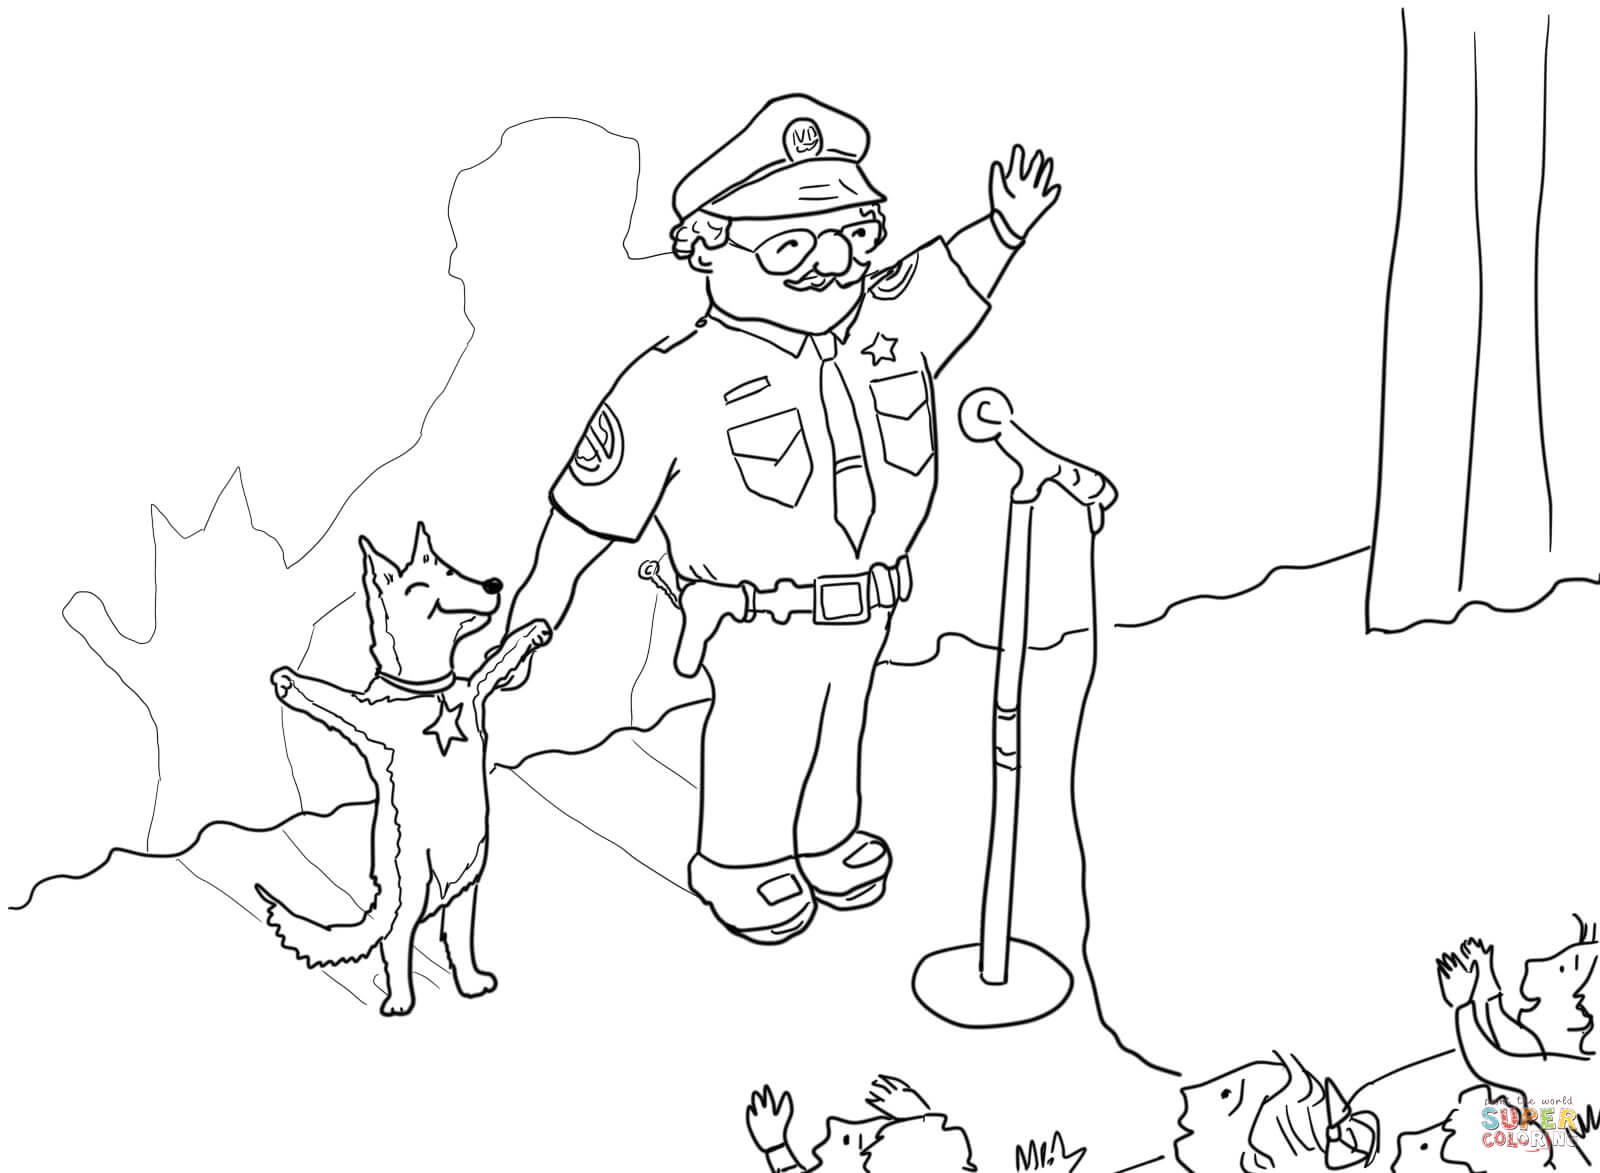 officer buckle and gloria coloring pages officer buckle and gloria coloring pages coloring home pages buckle officer coloring and gloria